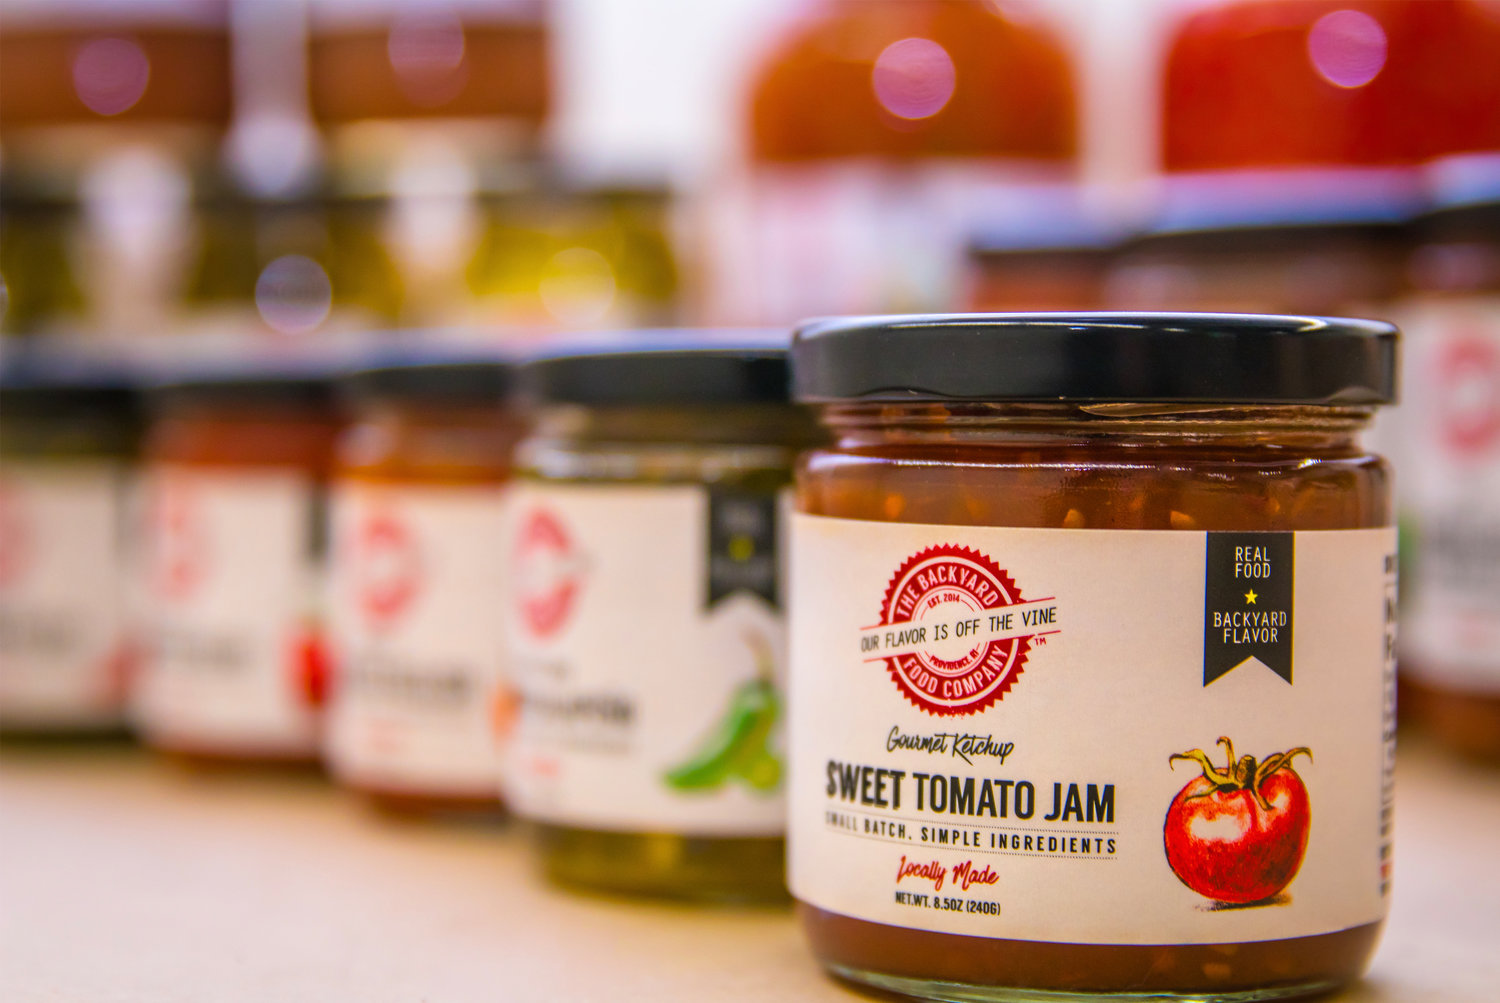 Backyard Food Company makes a variety of sauces, jams, relishes, and more